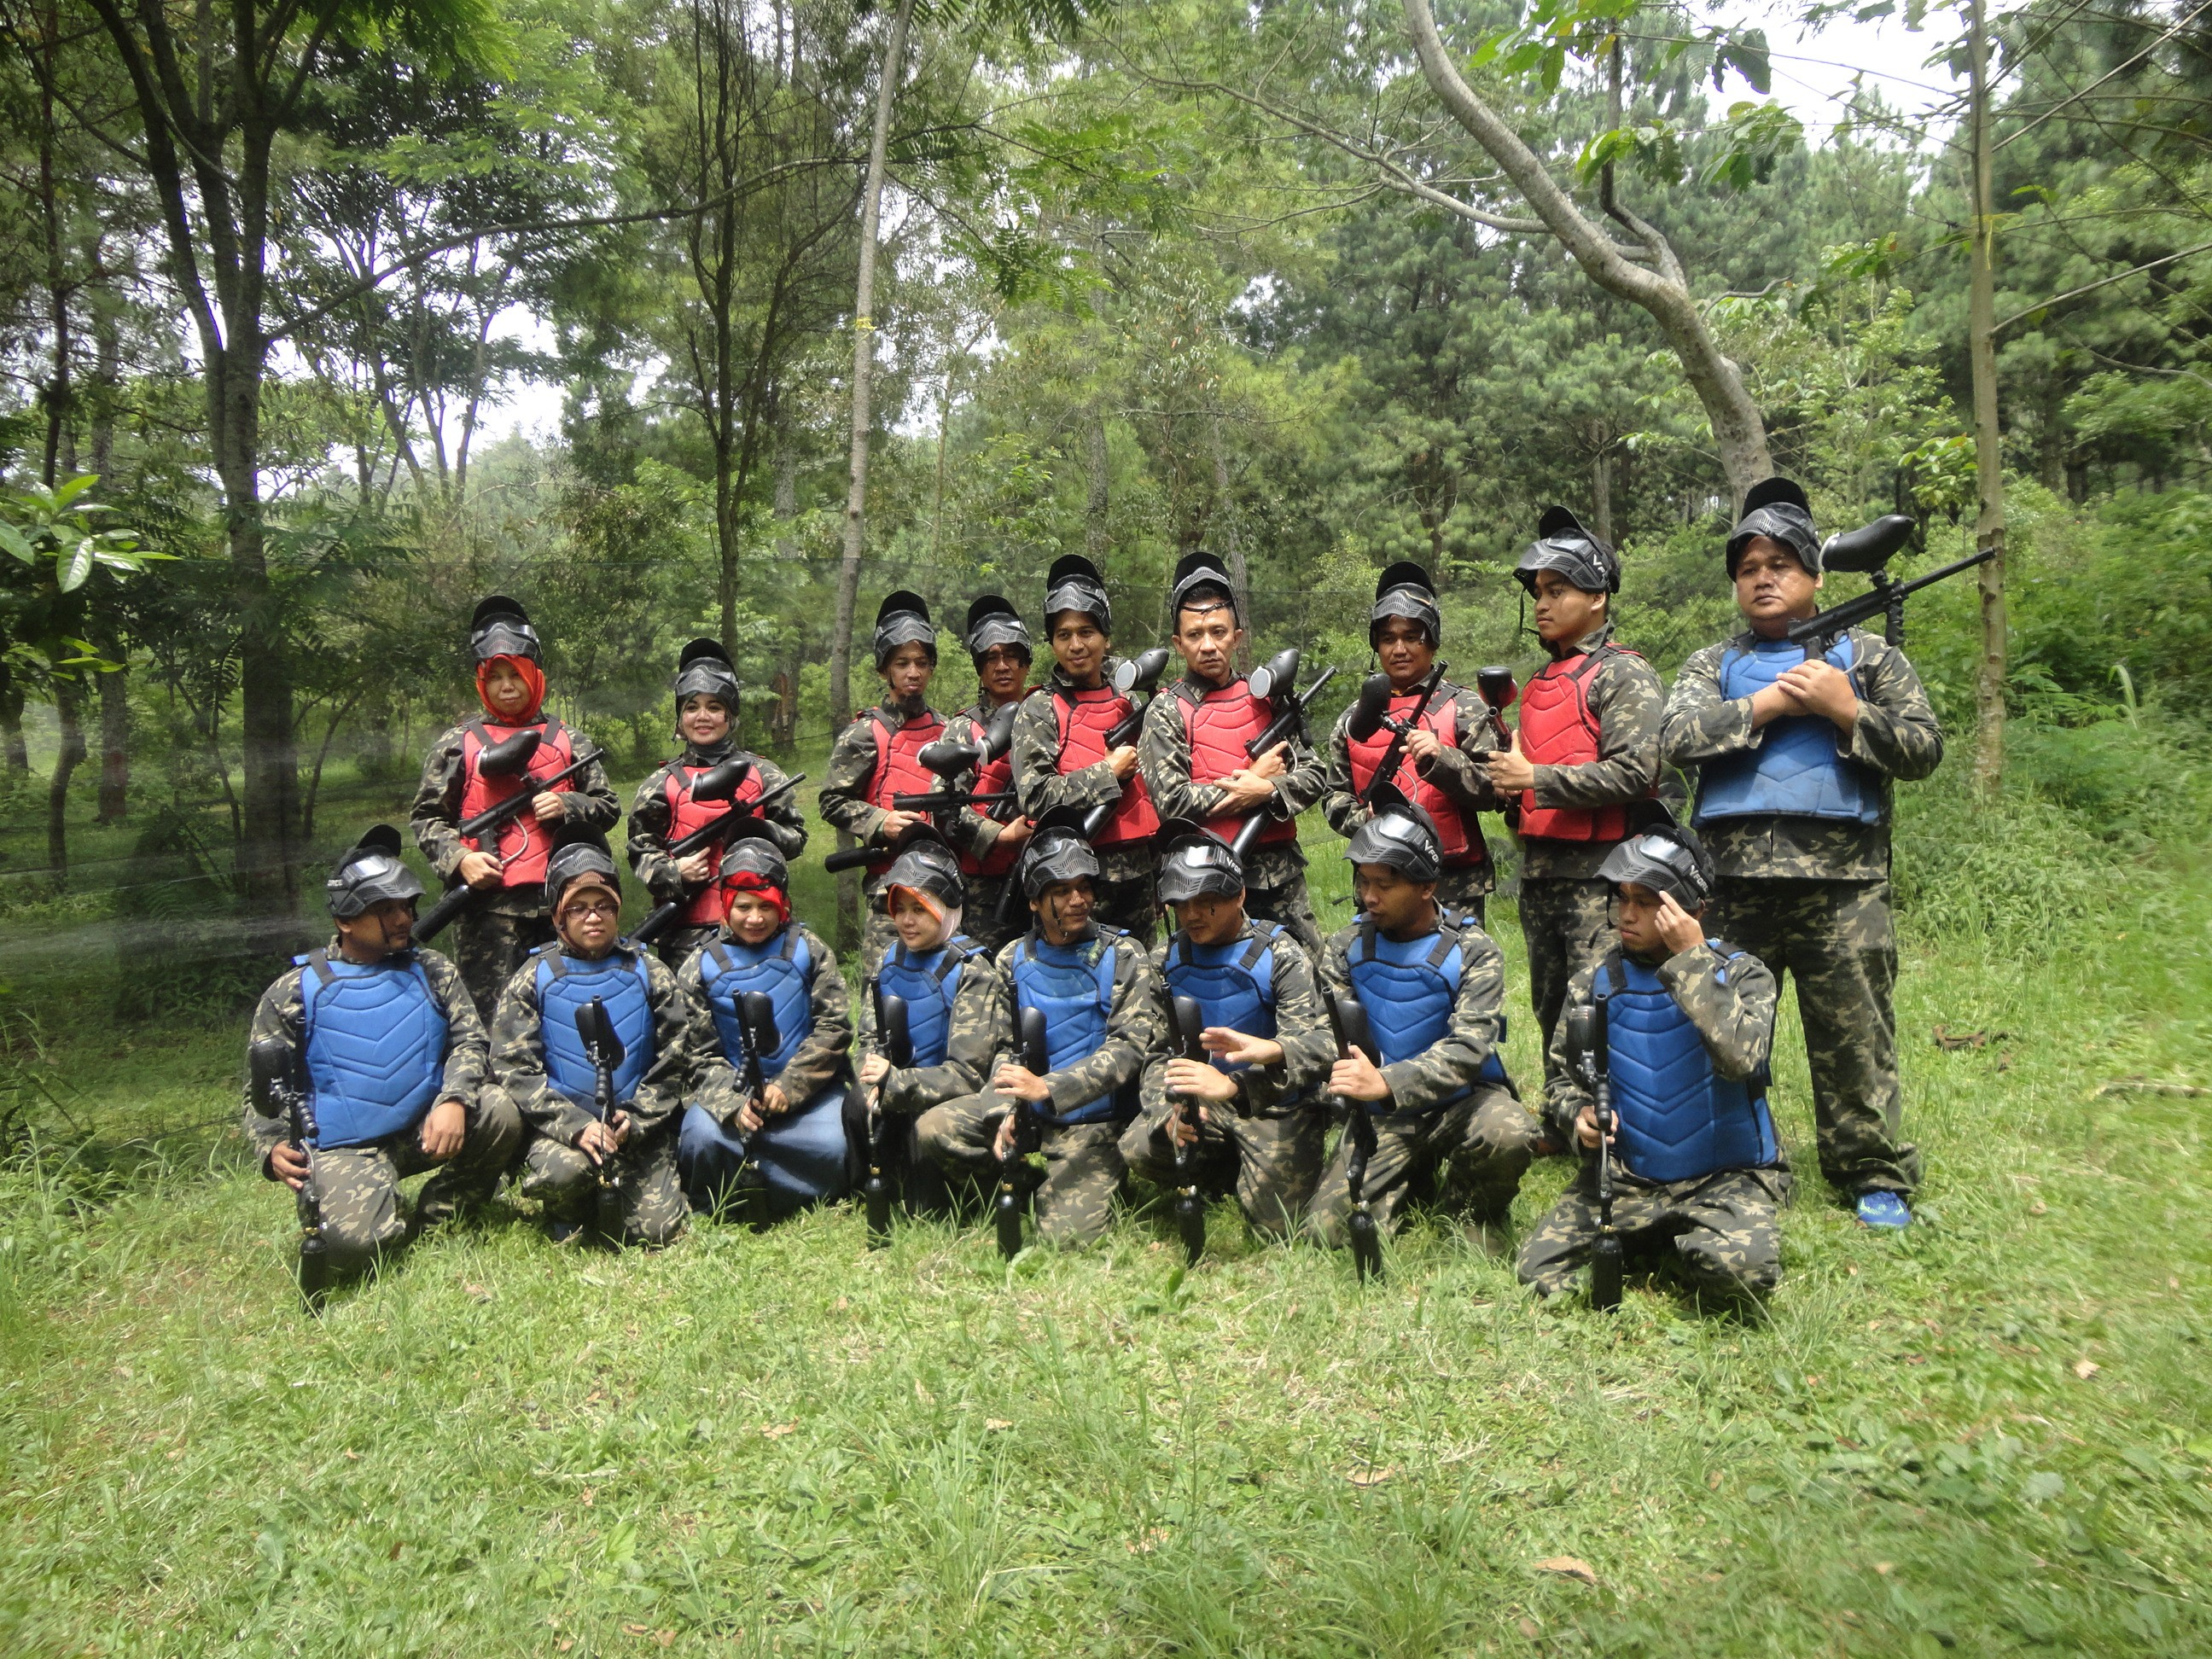 <h1>081231938011 , Paintball Surabaya , Paintball di Surabaya,Legal & Stakeholder Management Pamasuka Makasar</h1>